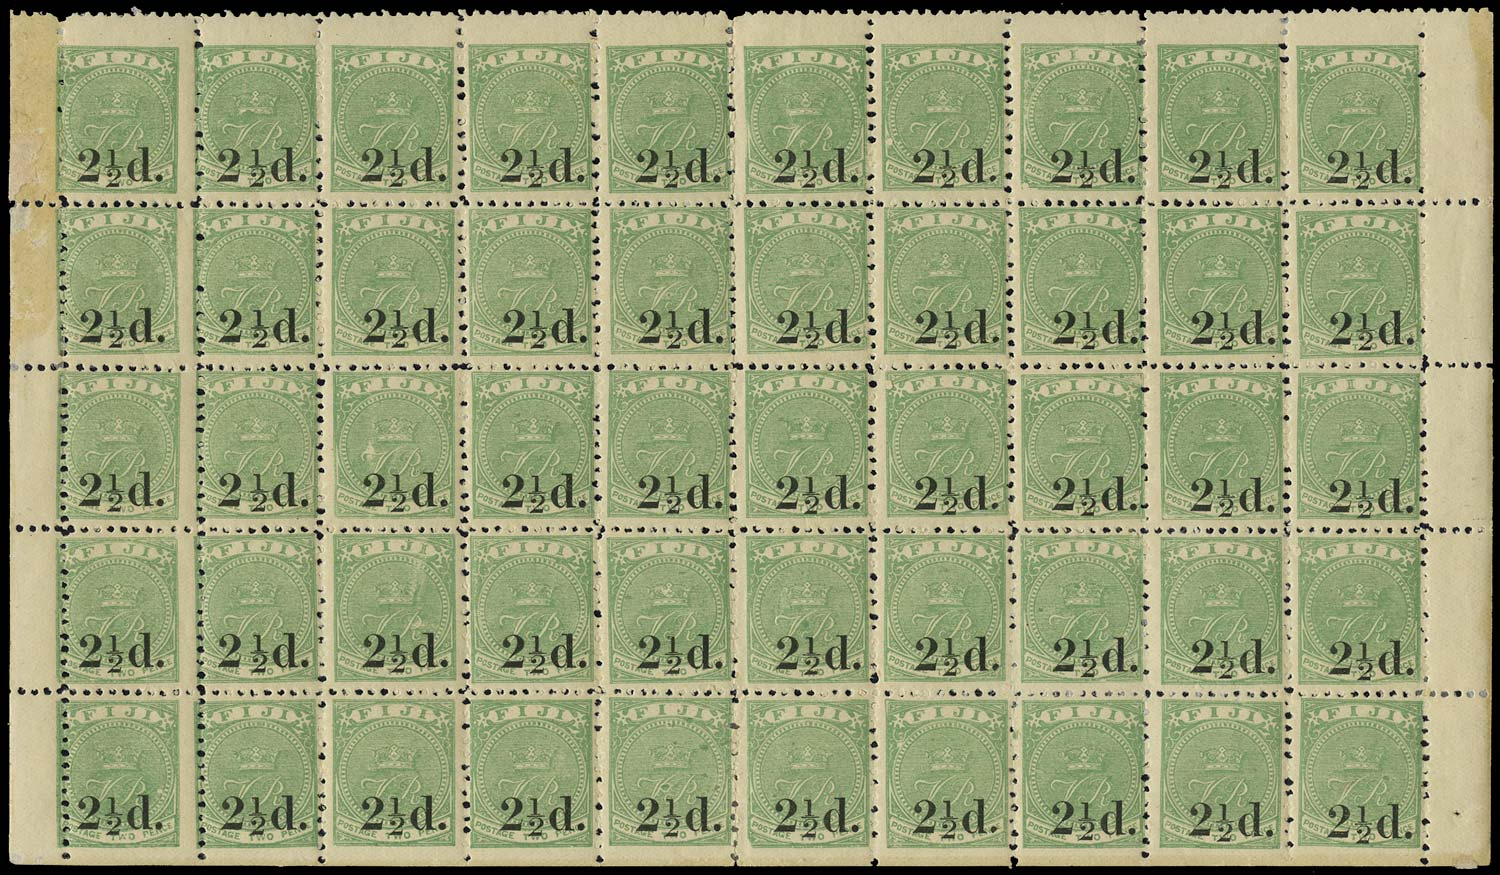 FIJI 1891  SG70, 71 Mint 2½d on 2d green complete pane of 50